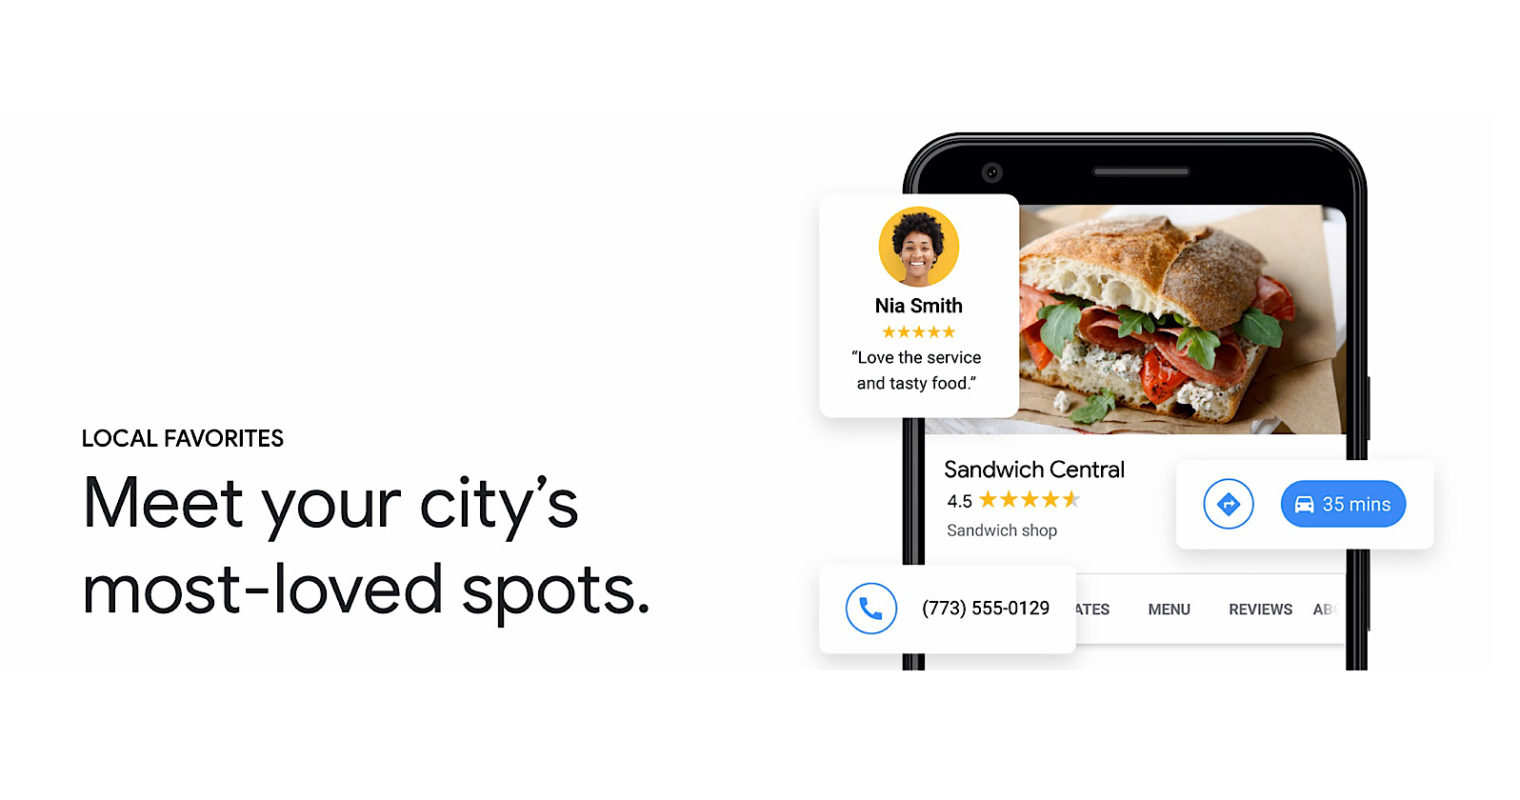 Google Highlights Restaurants That Earned 'Local Favorite' Status